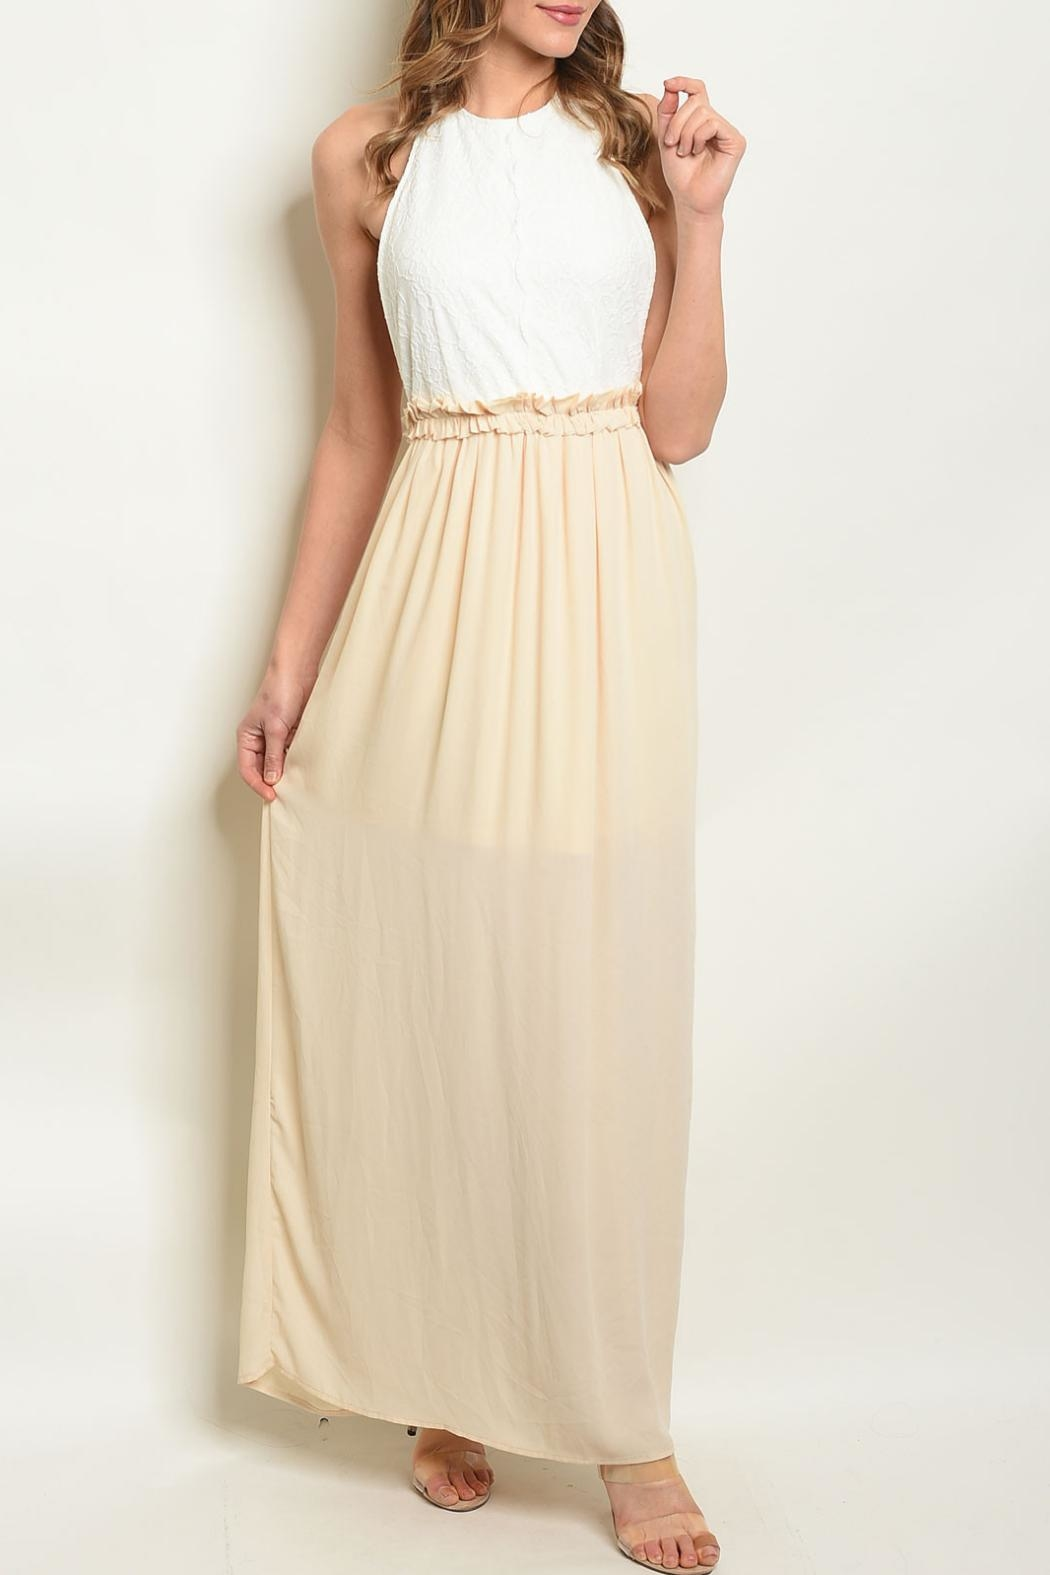 BD Collection White Cream Dress - Main Image